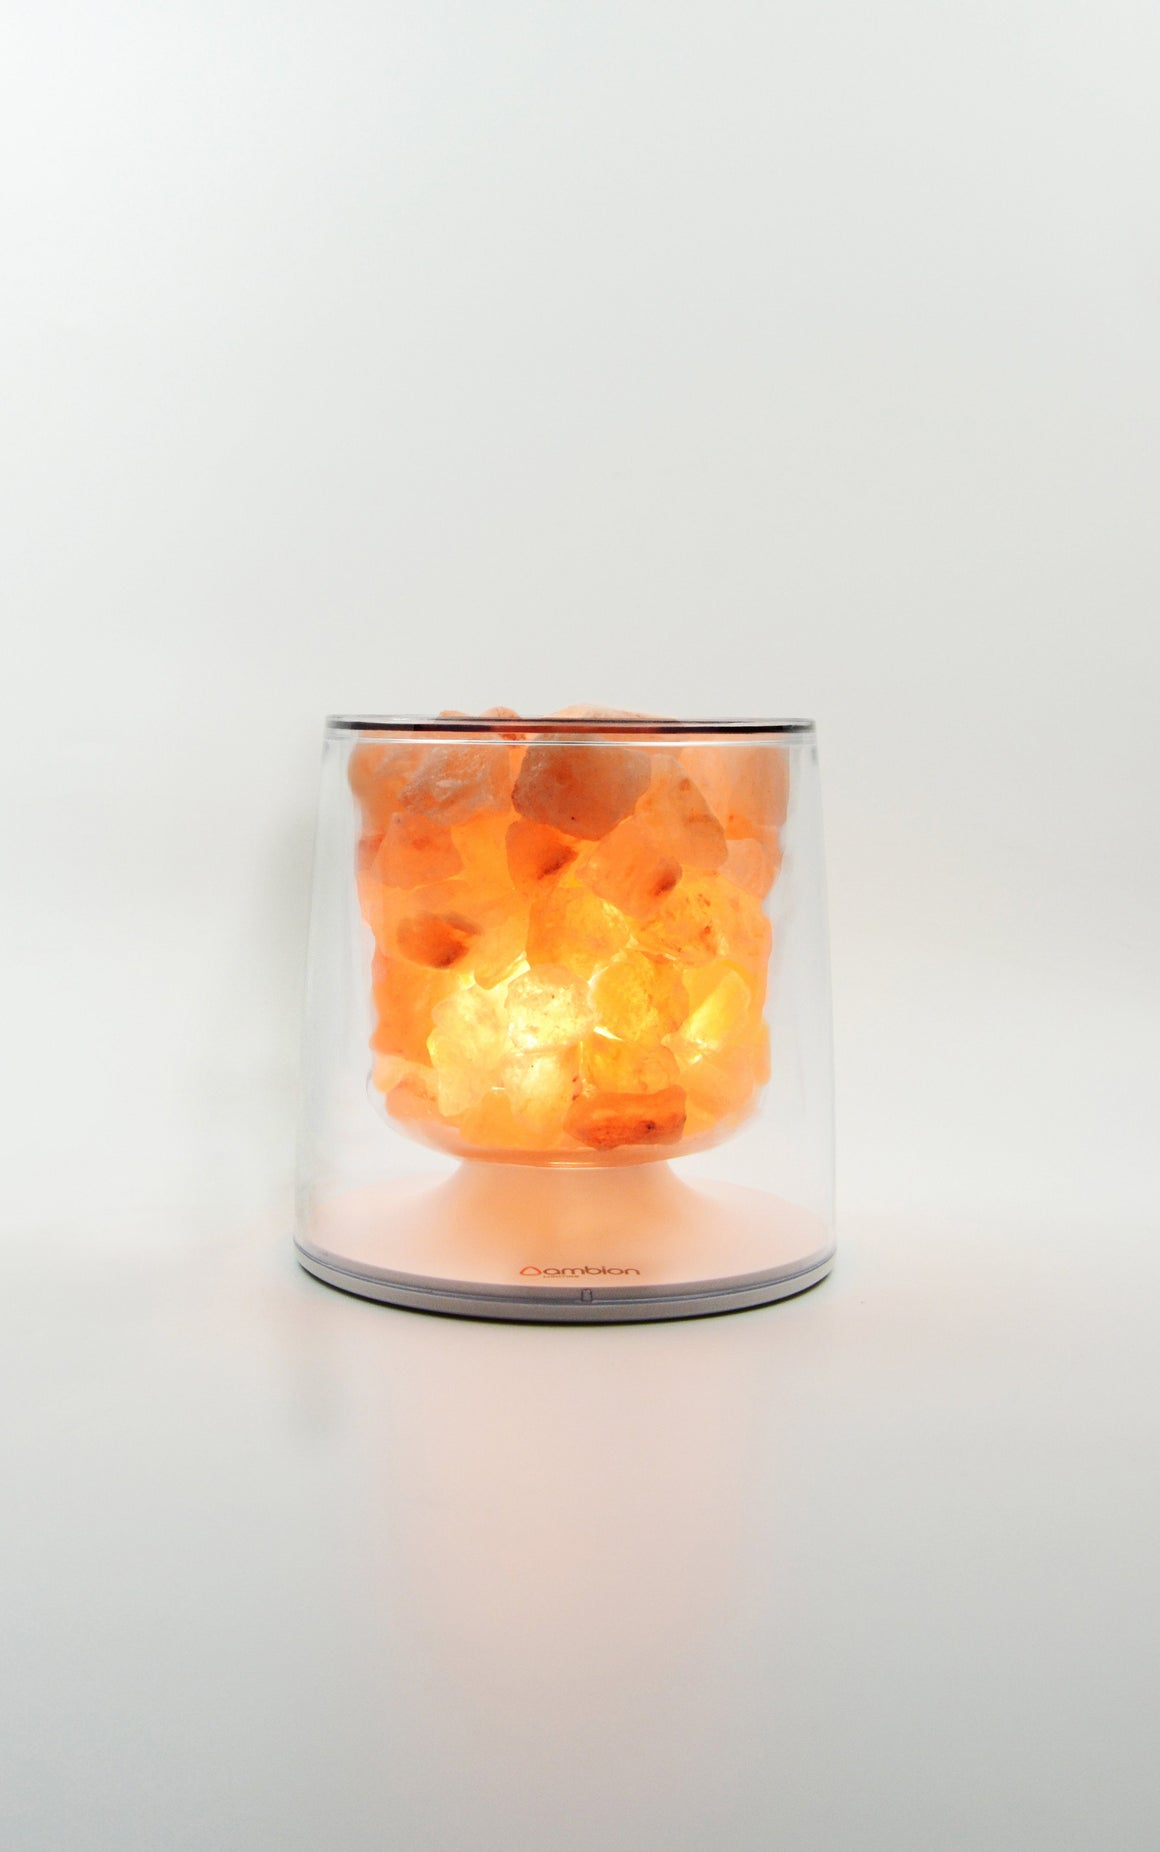 'Harvest' Himalayan Salt Lamp